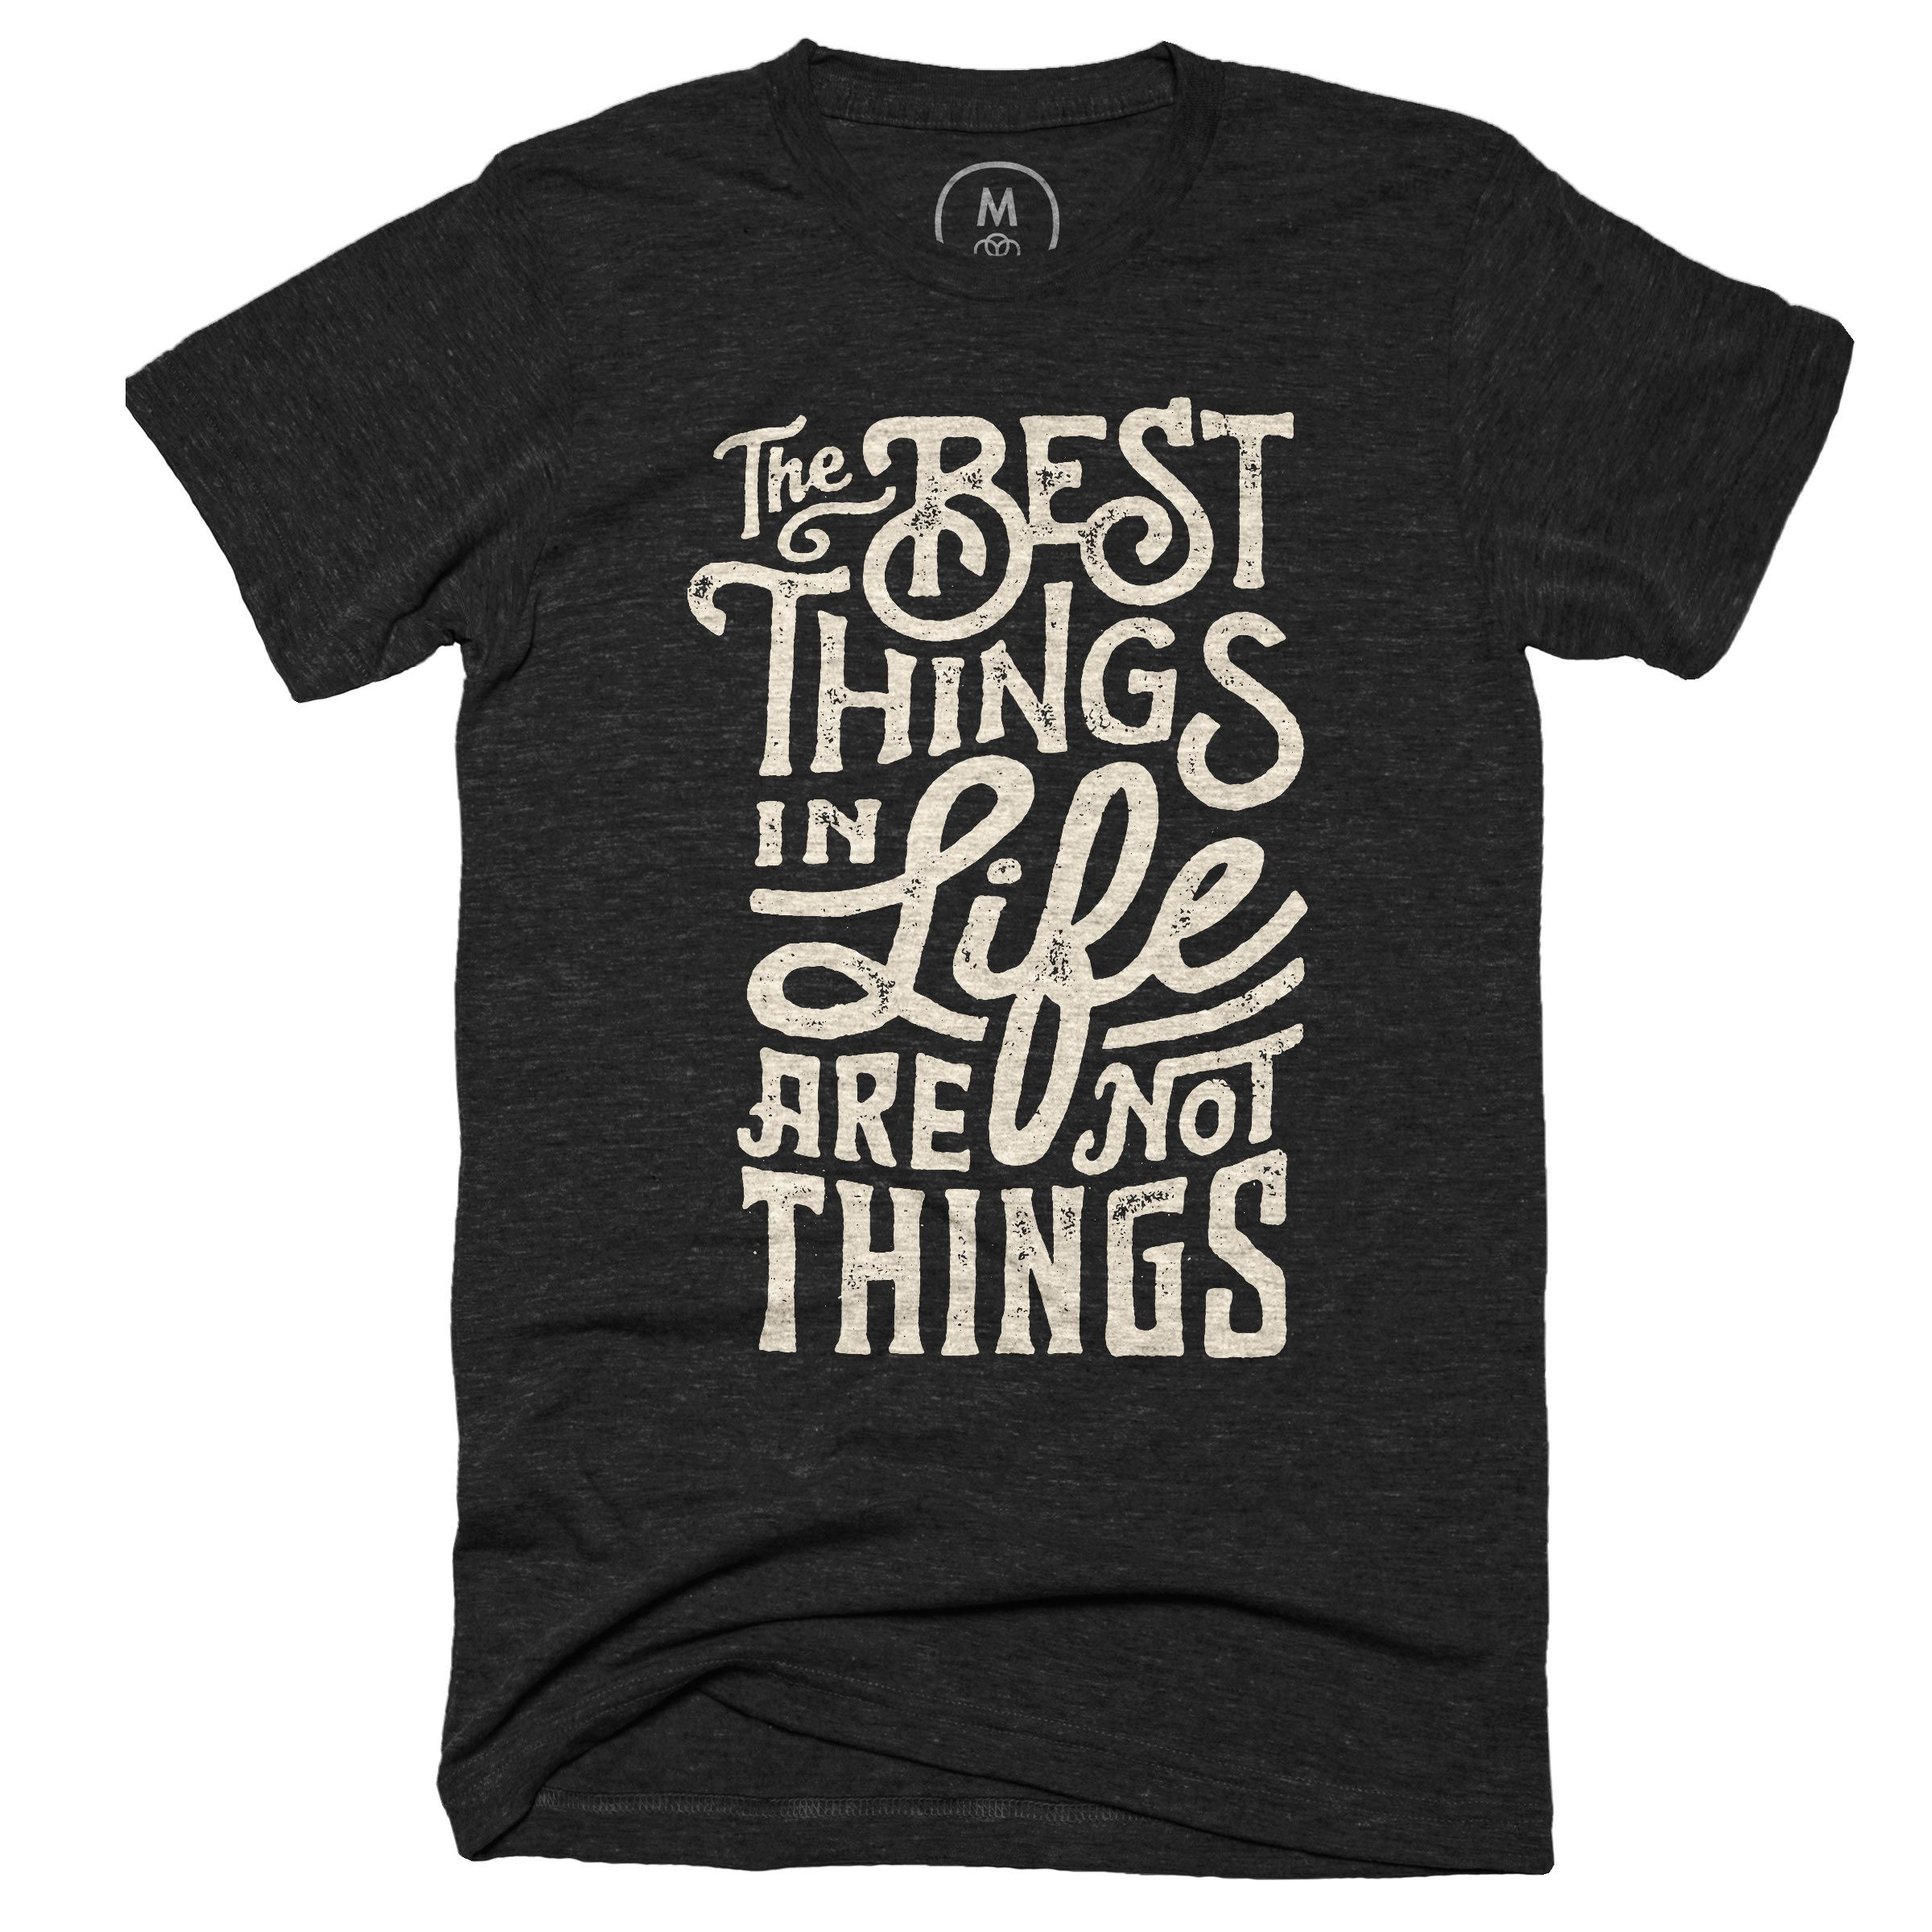 Contoh design t shirt family day -  The Best Things Graphic Designer T Shirt By Wes Allen